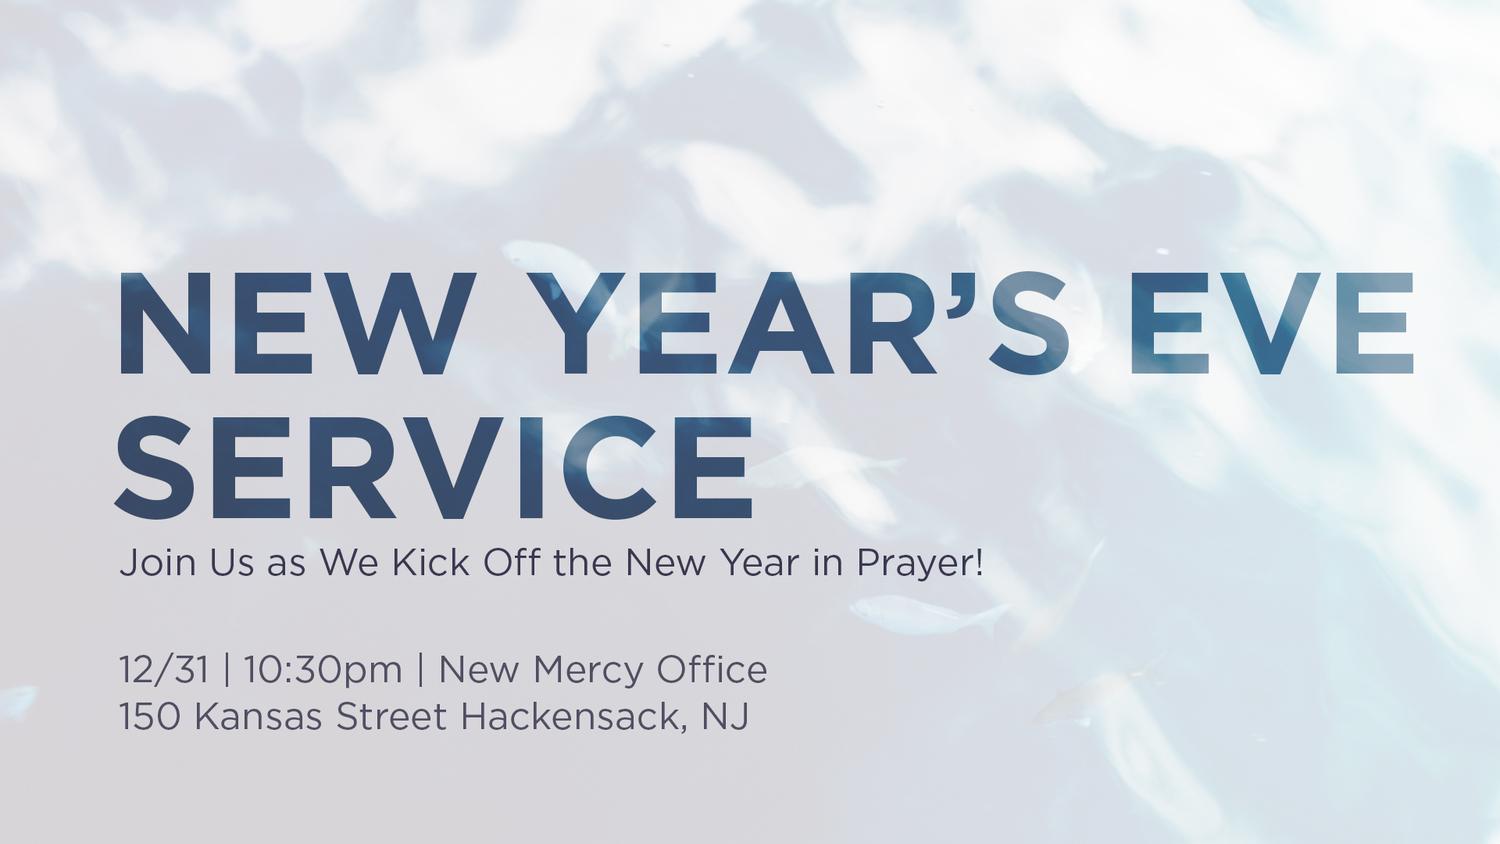 NEW YEARS EVE SERVICE — New Mercy Community Church